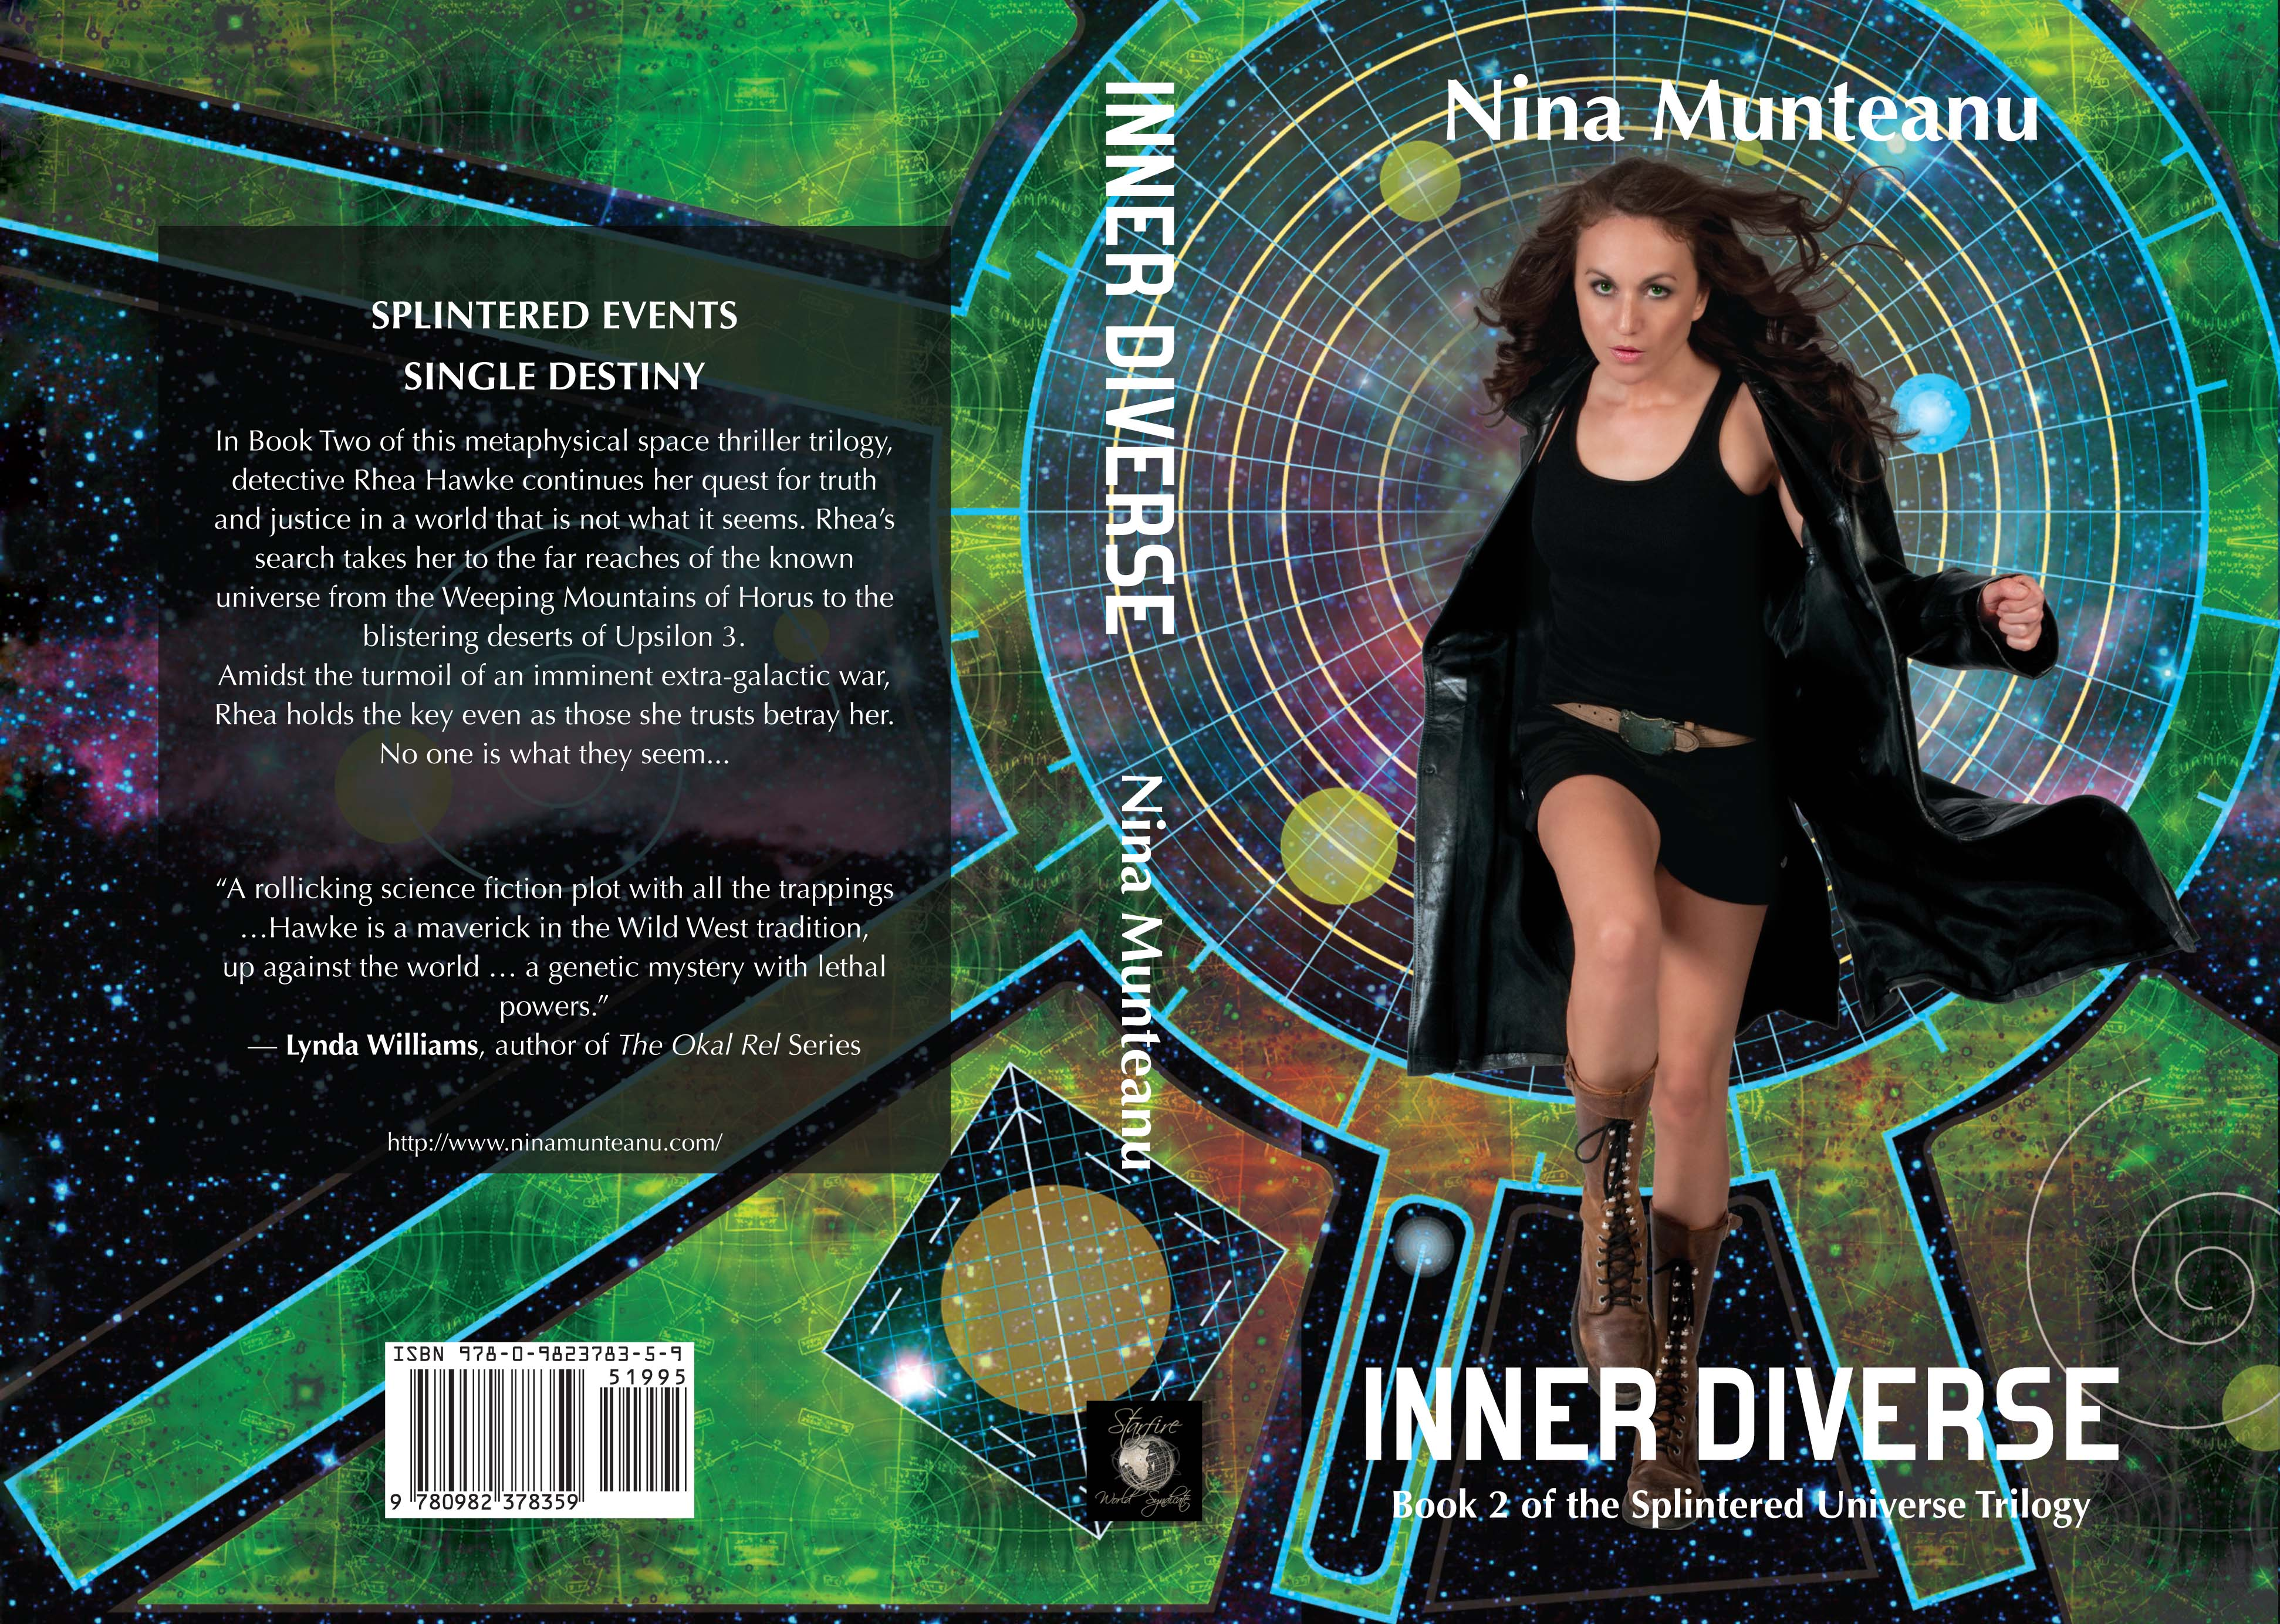 inner-diverse-full-cover copy